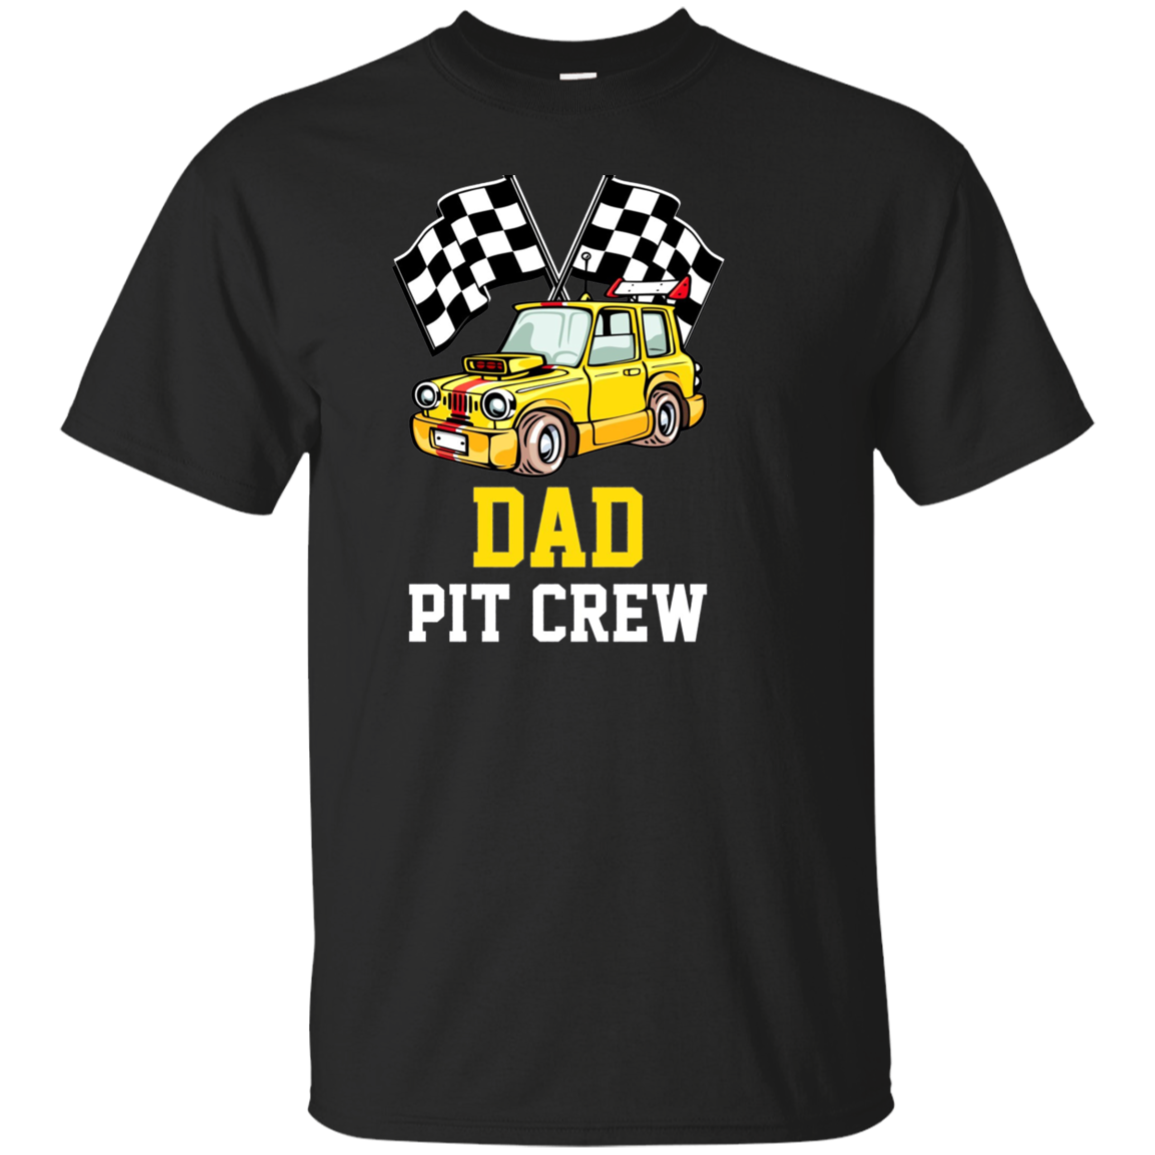 Pit Crew DAD Back Print Long Sleeve T-Shirt Race Car